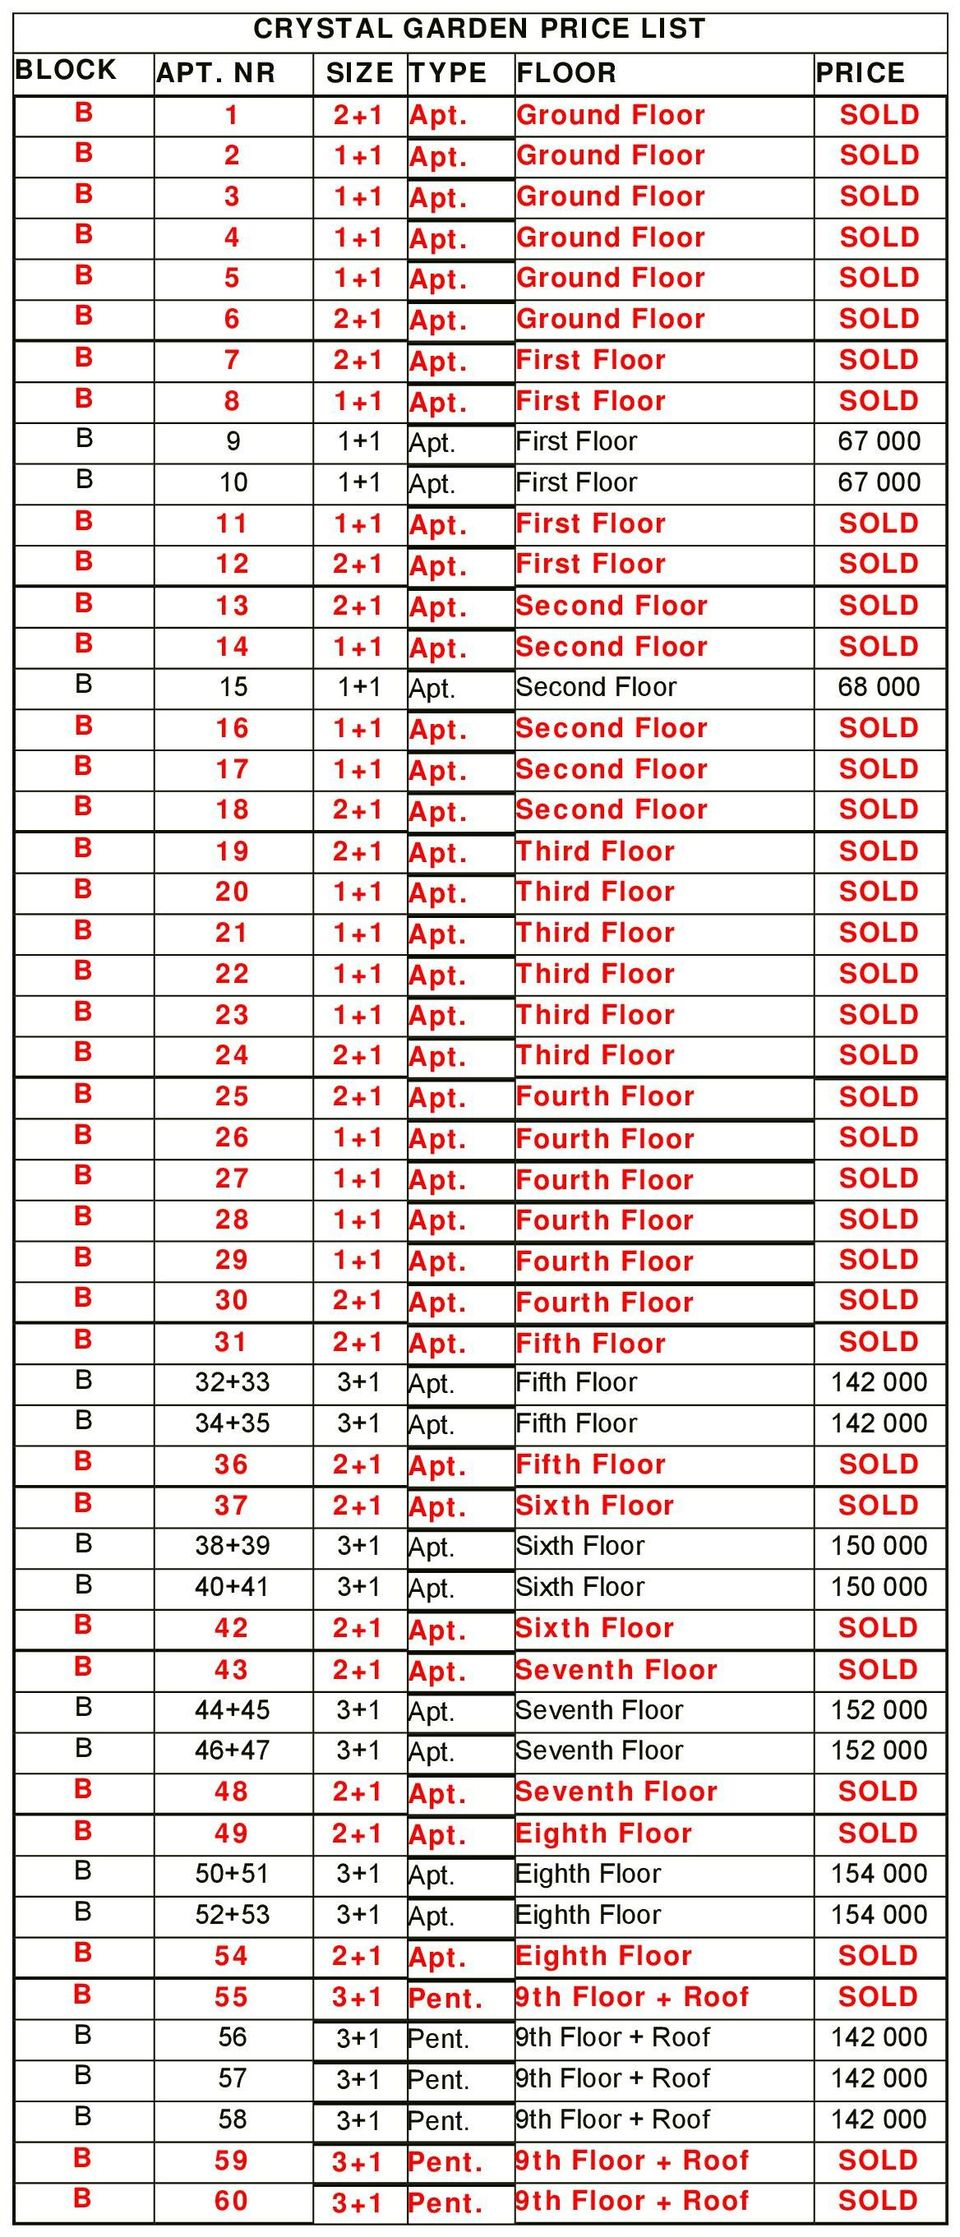 First Floor SOLD B 12 2+1 Apt. First Floor SOLD B 13 2+1 Apt. Second Floor SOLD B 14 1+1 Apt. Second Floor SOLD B 15 1+1 Apt. Second Floor 68 000 B 16 1+1 Apt. Second Floor SOLD B 17 1+1 Apt.